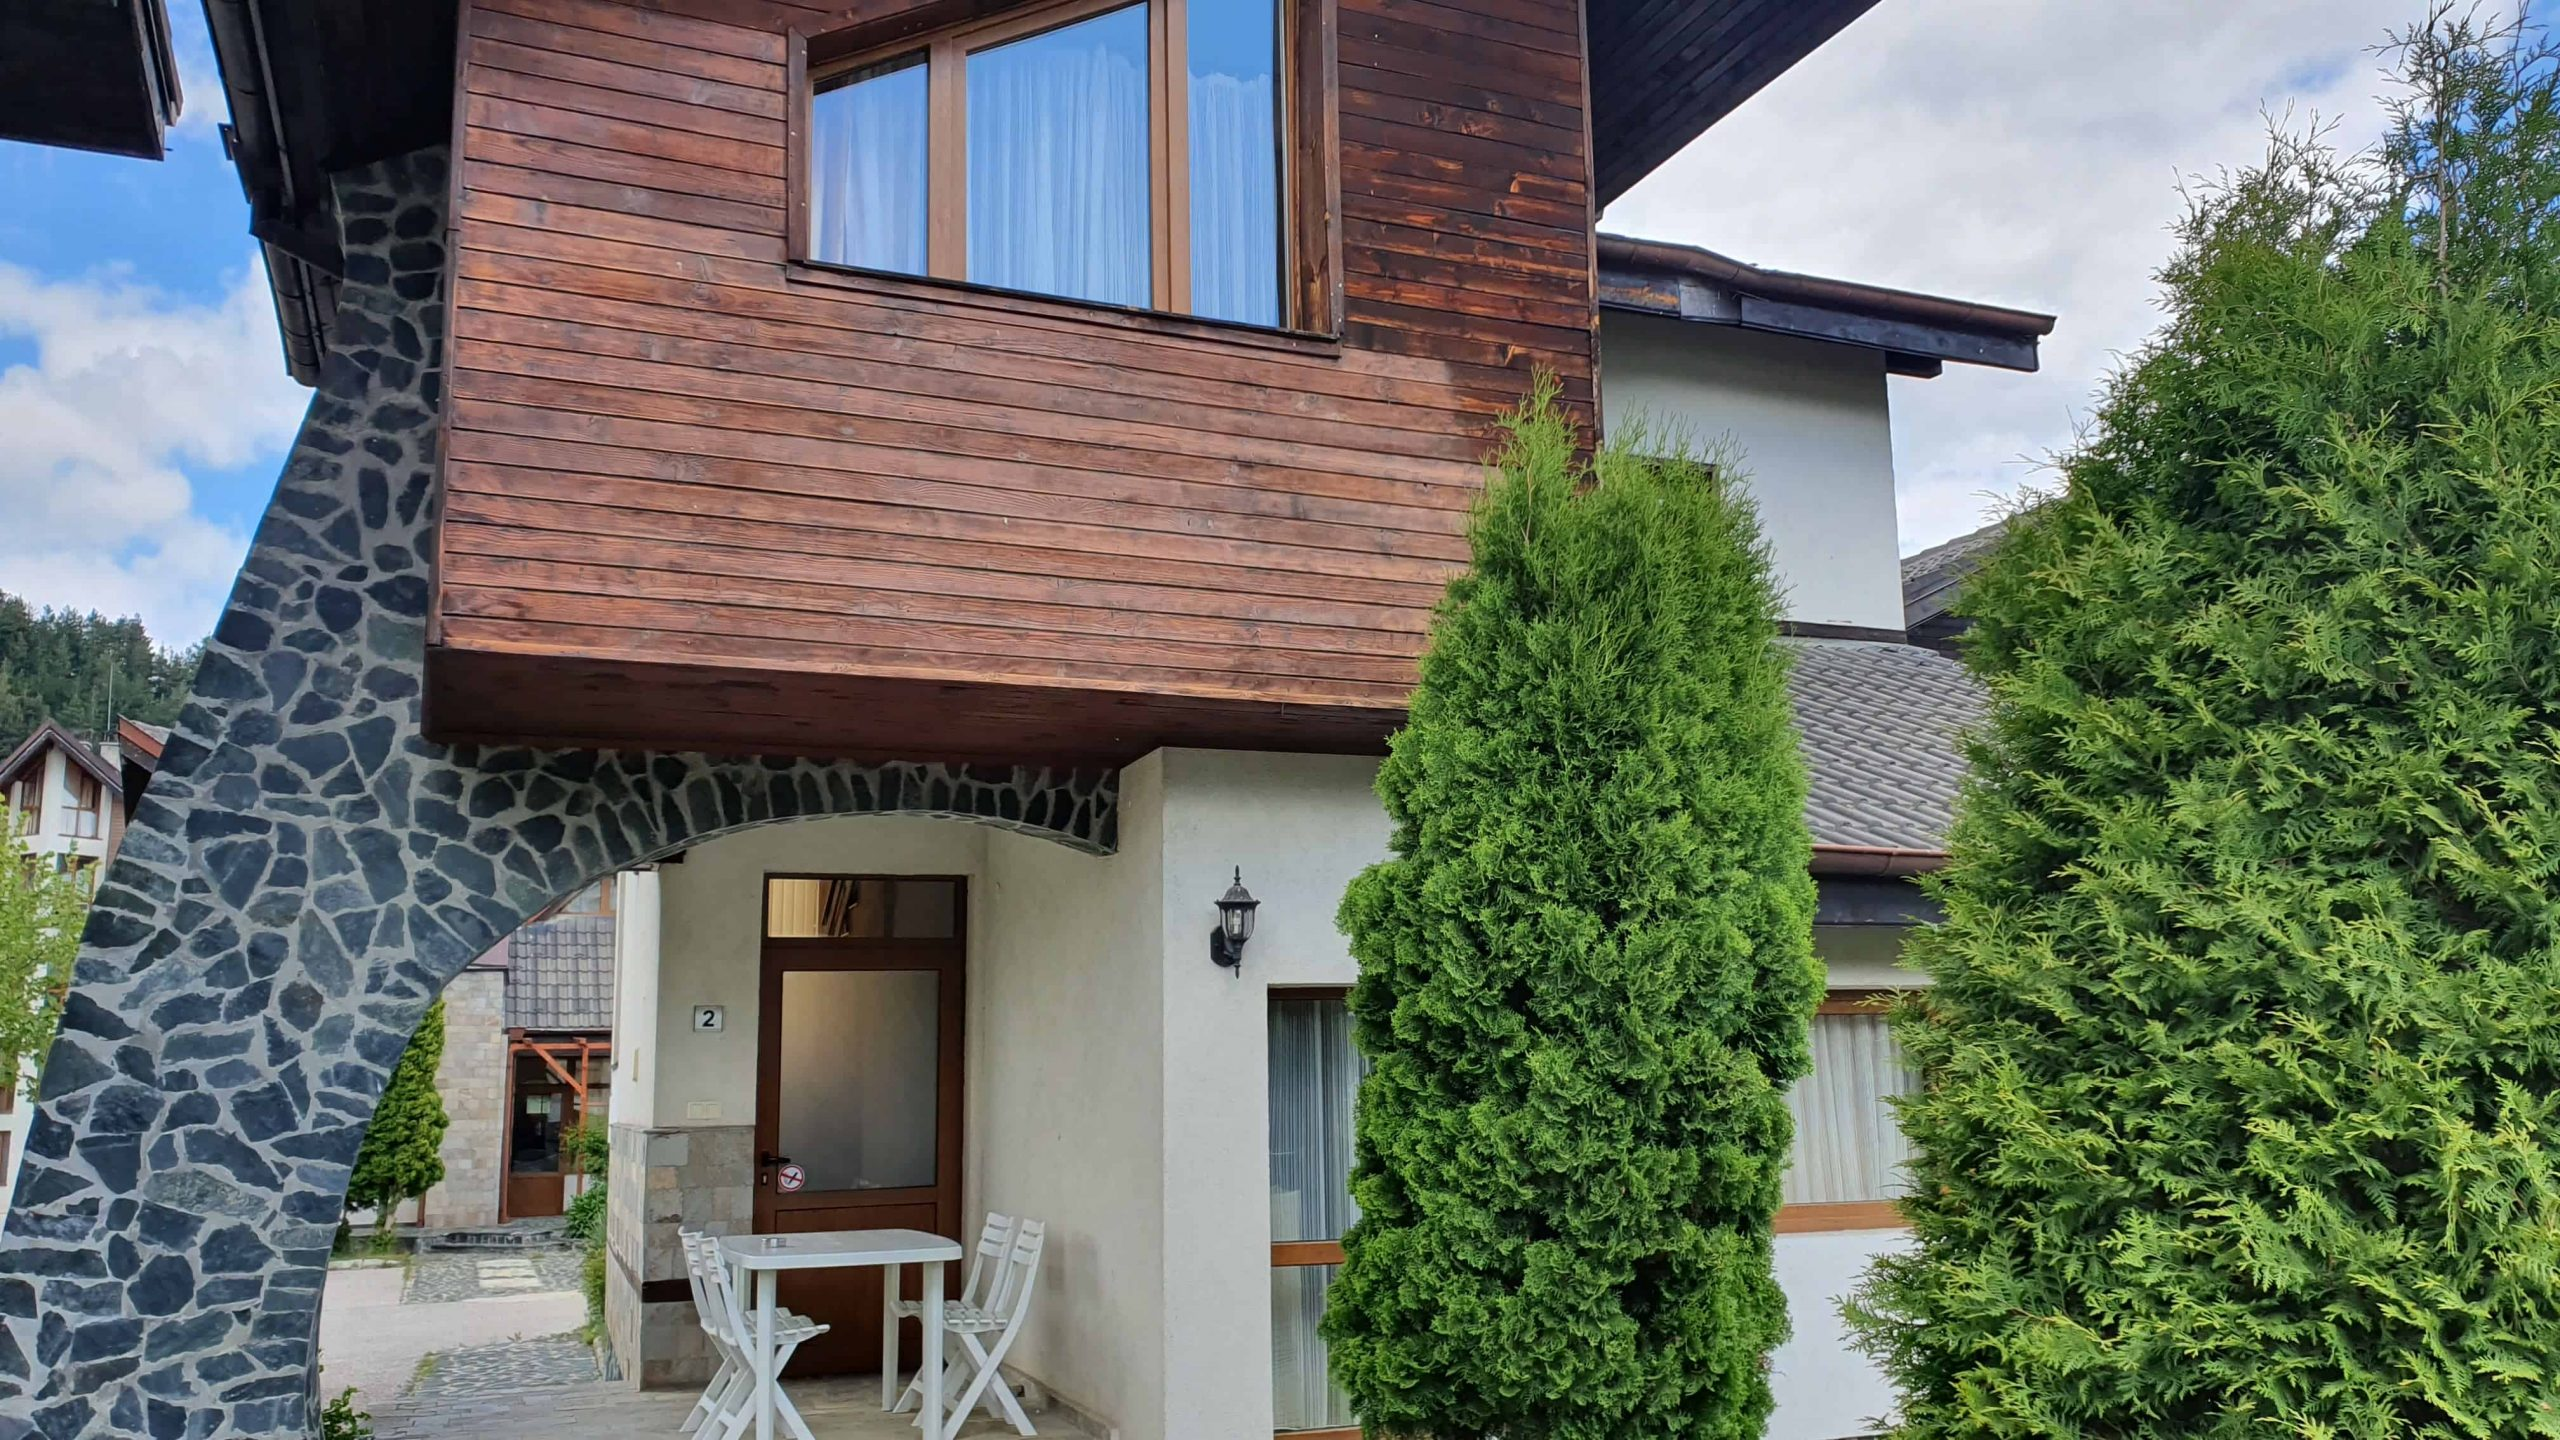 2 bedroom chalet with private sauna in Redenka Holiday Club